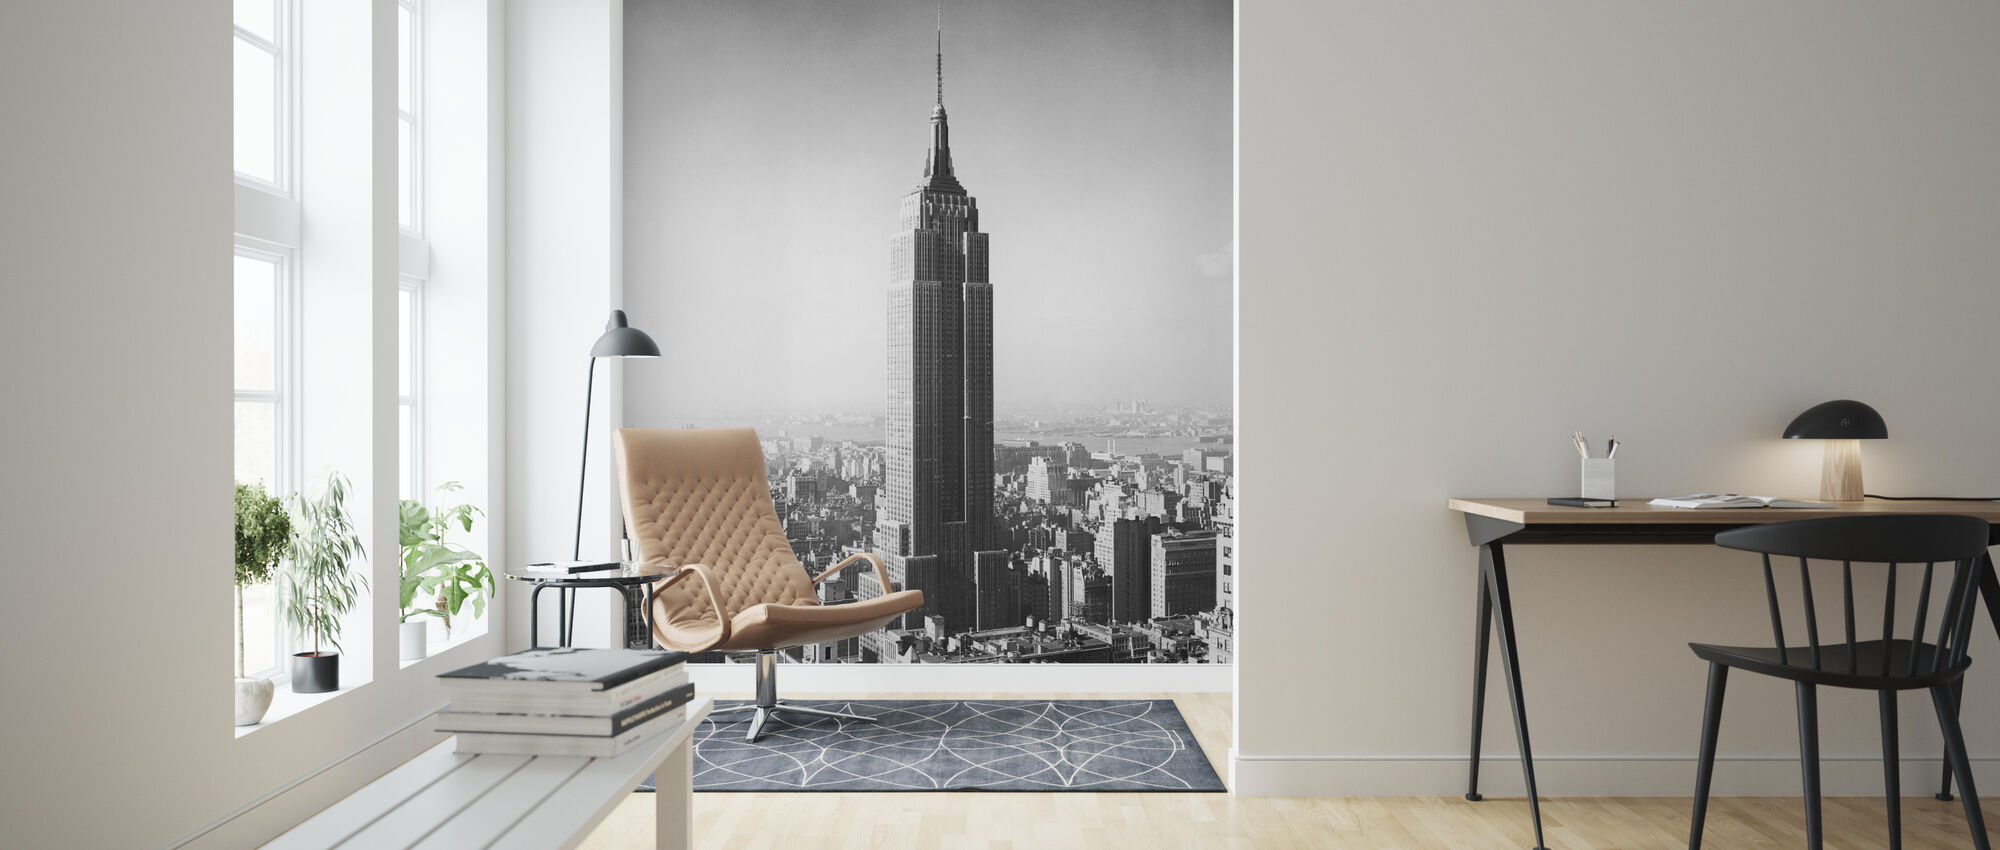 1955 The Empire State Building - Wallpaper - Living Room